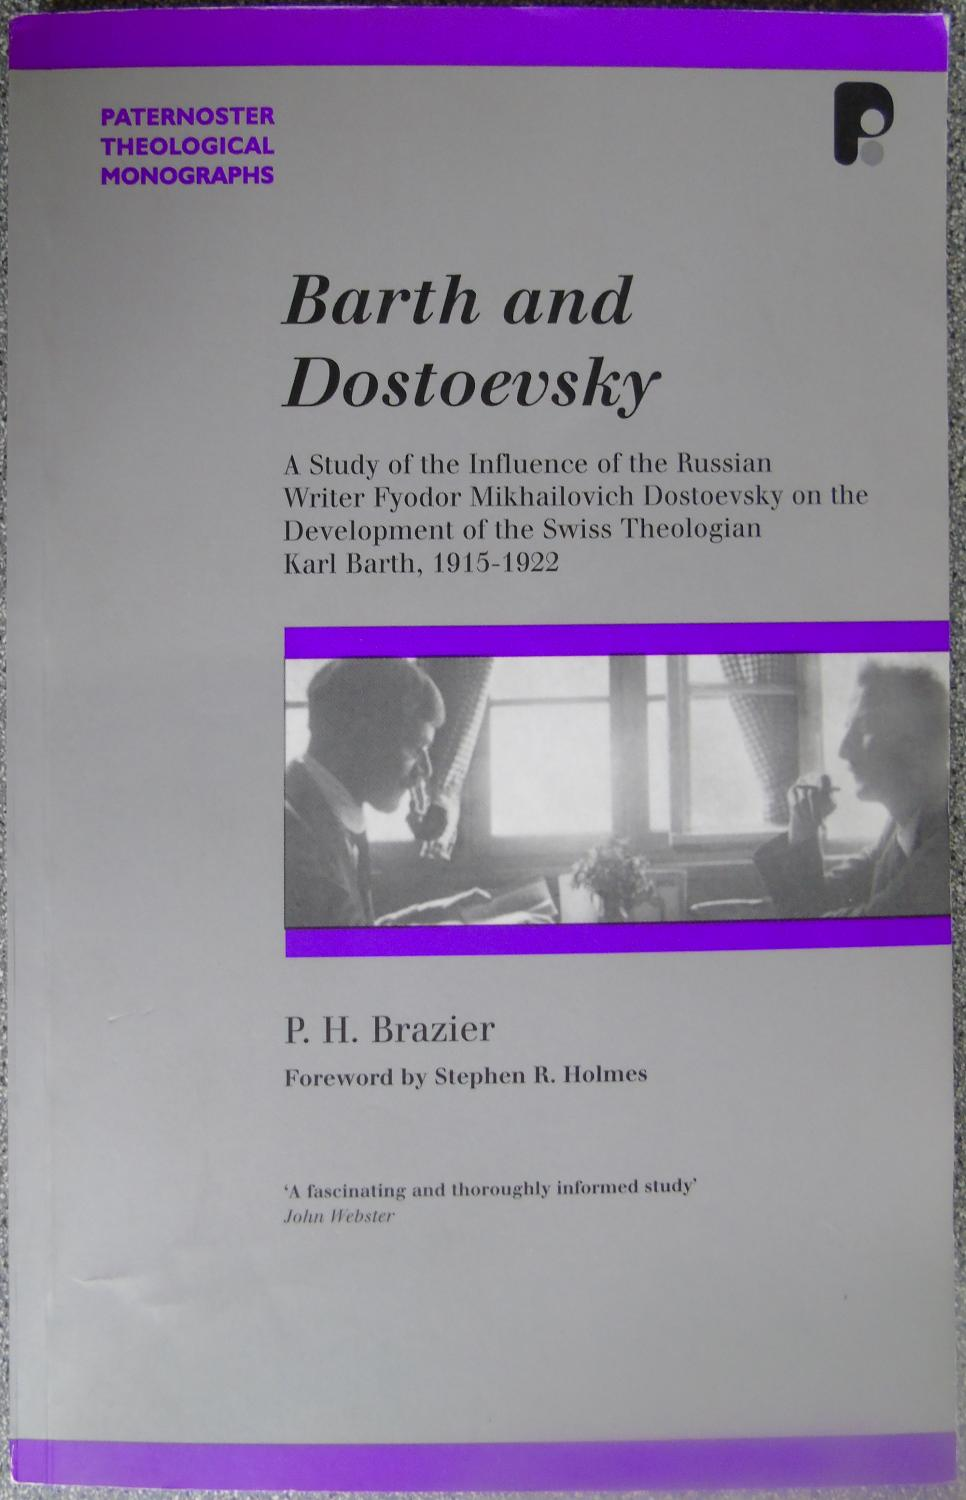 Barth and Dostoevsky: A Study of the Influence of Fyodor Dostoevsky on the Development of Karl Barth, 1915 - 1922 (Paternoster Theological Monographs) - Brazier, P. H.